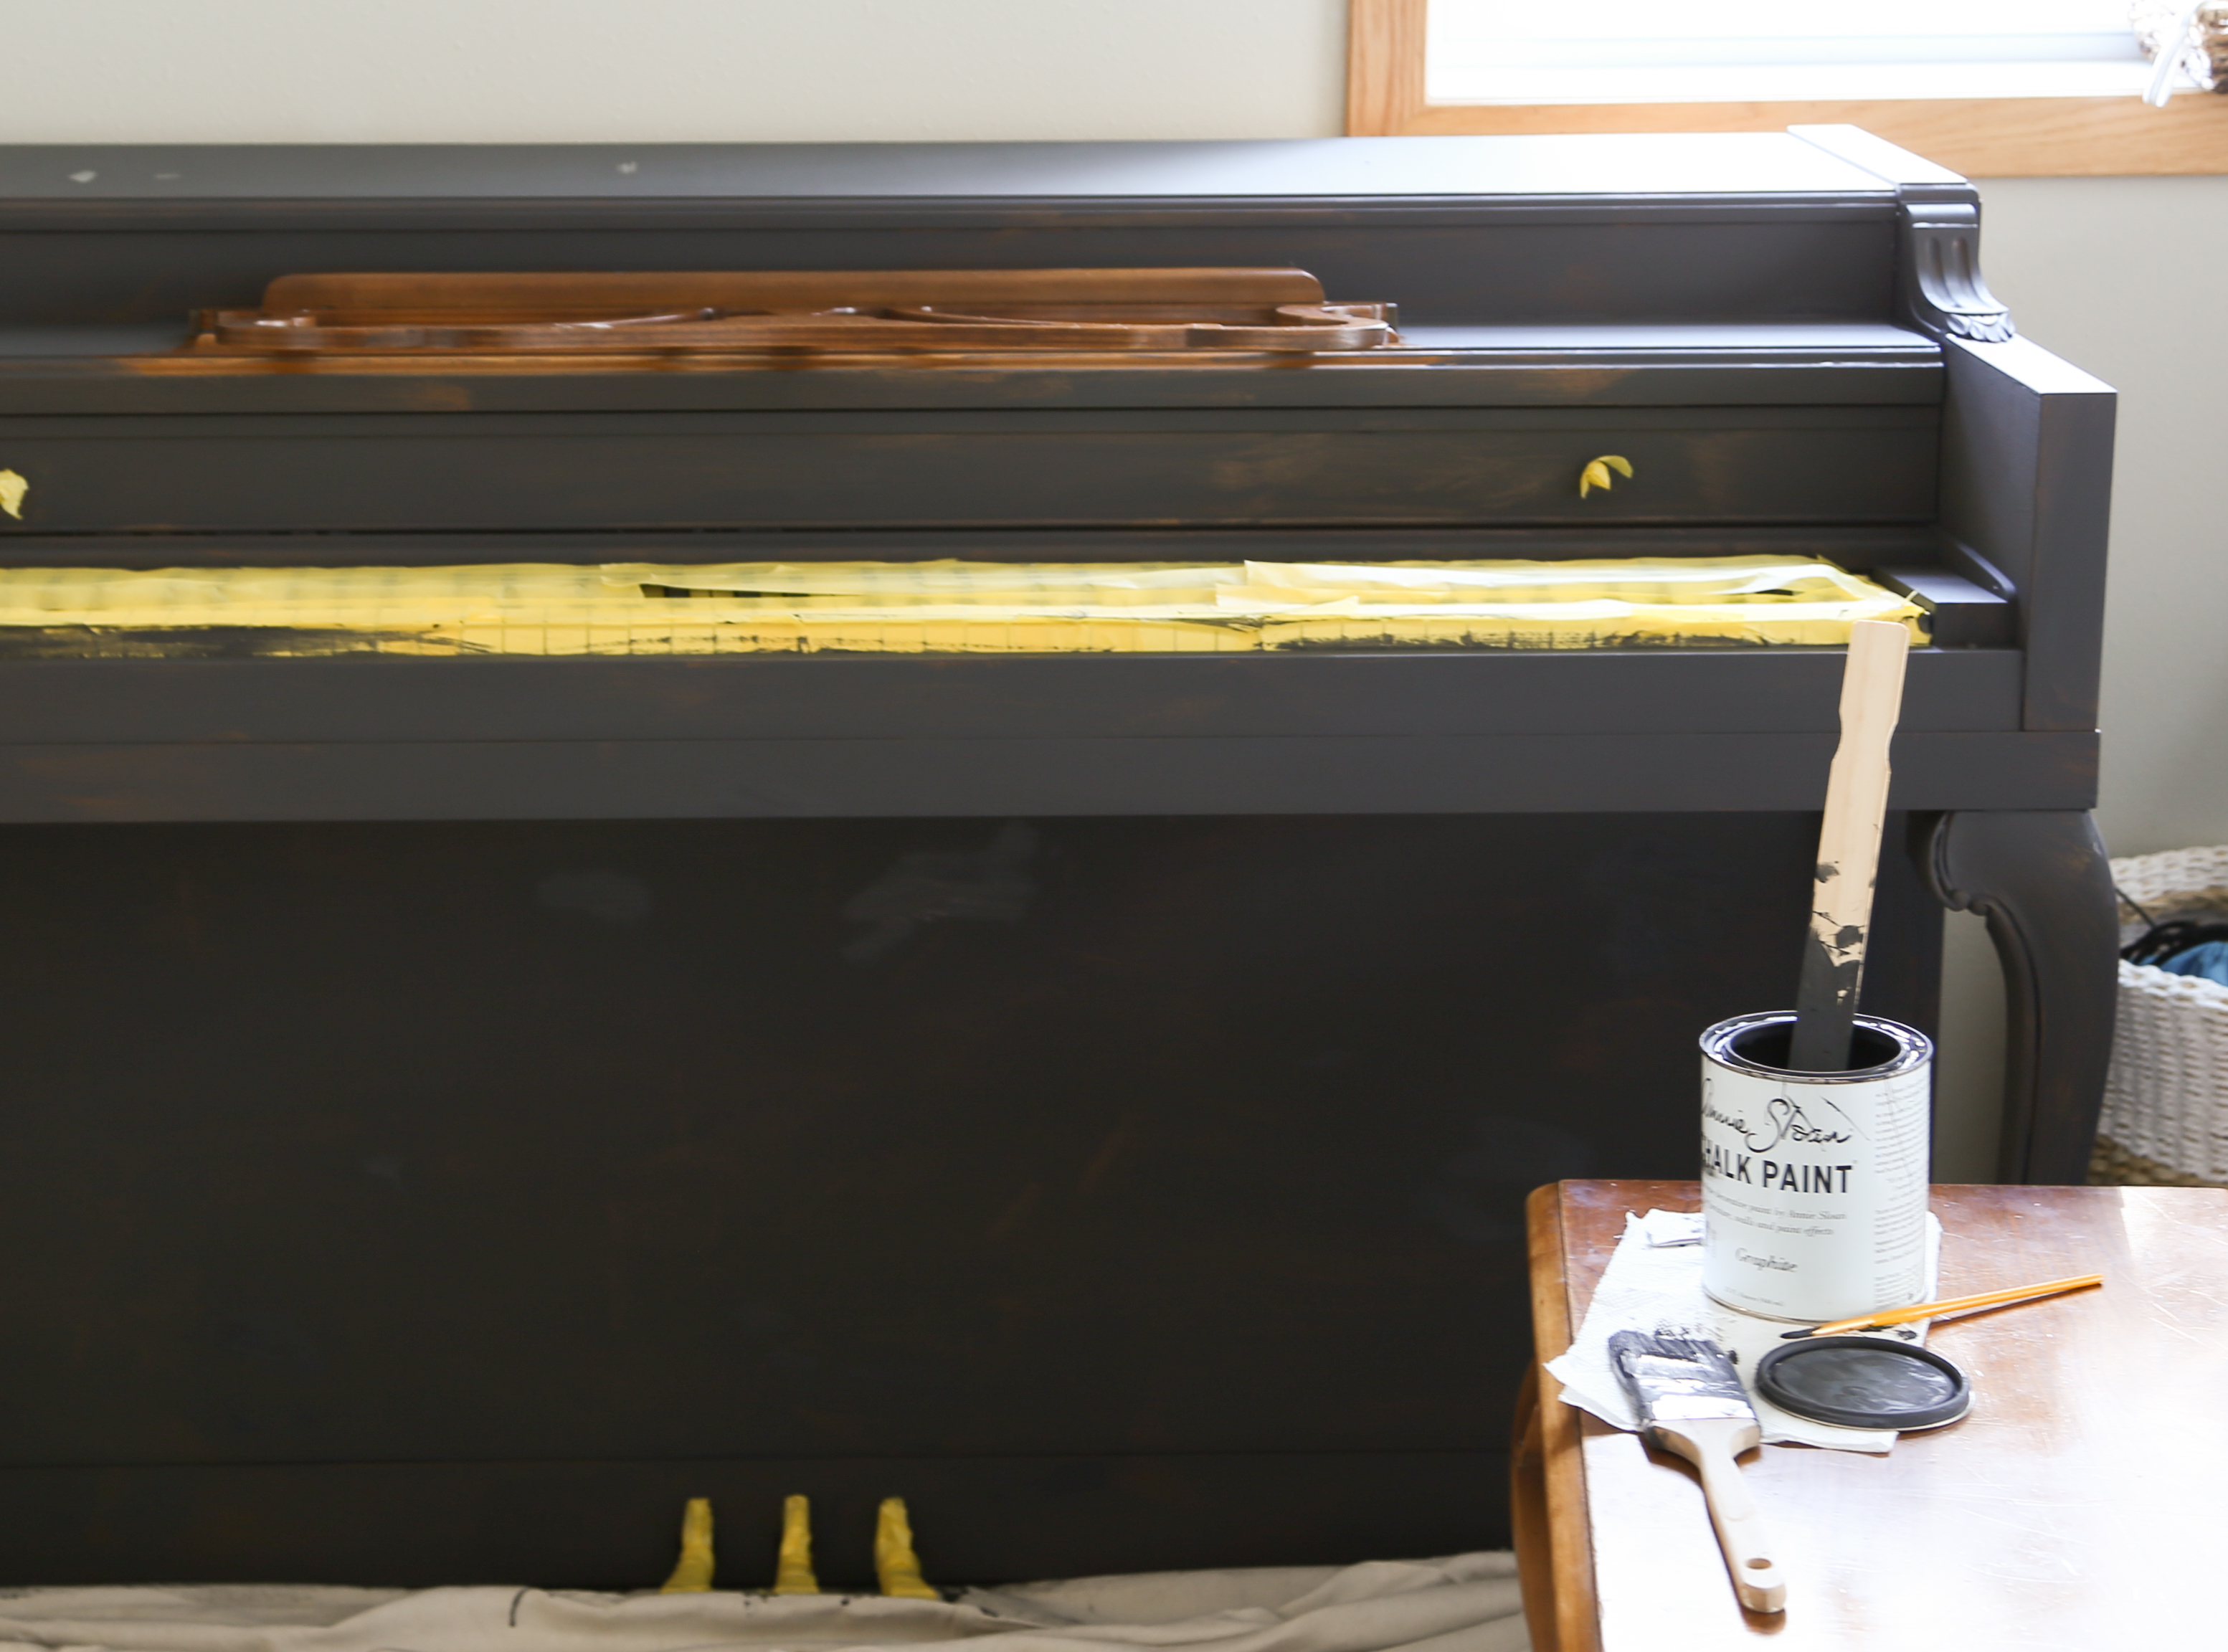 Apply two coats of chalk paint and furniture wax to the piano for a brand new piano!